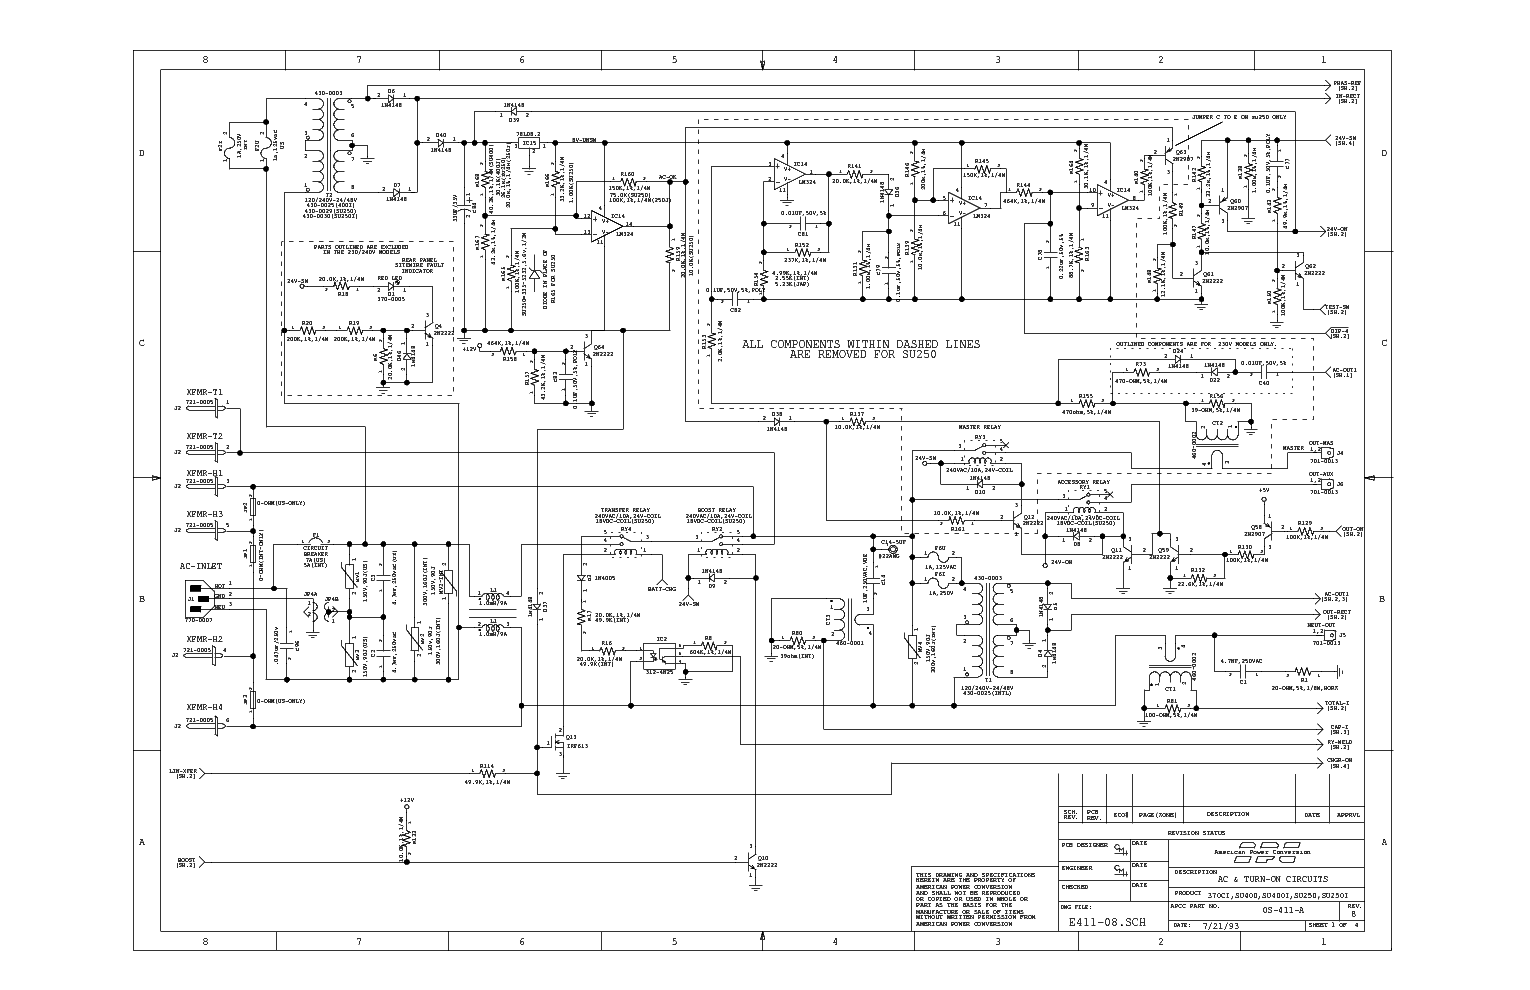 apc ups smart ups schematic google search circuits electronics apc smart ups circuit diagram apc smart ups diagram [ 1530 x 990 Pixel ]